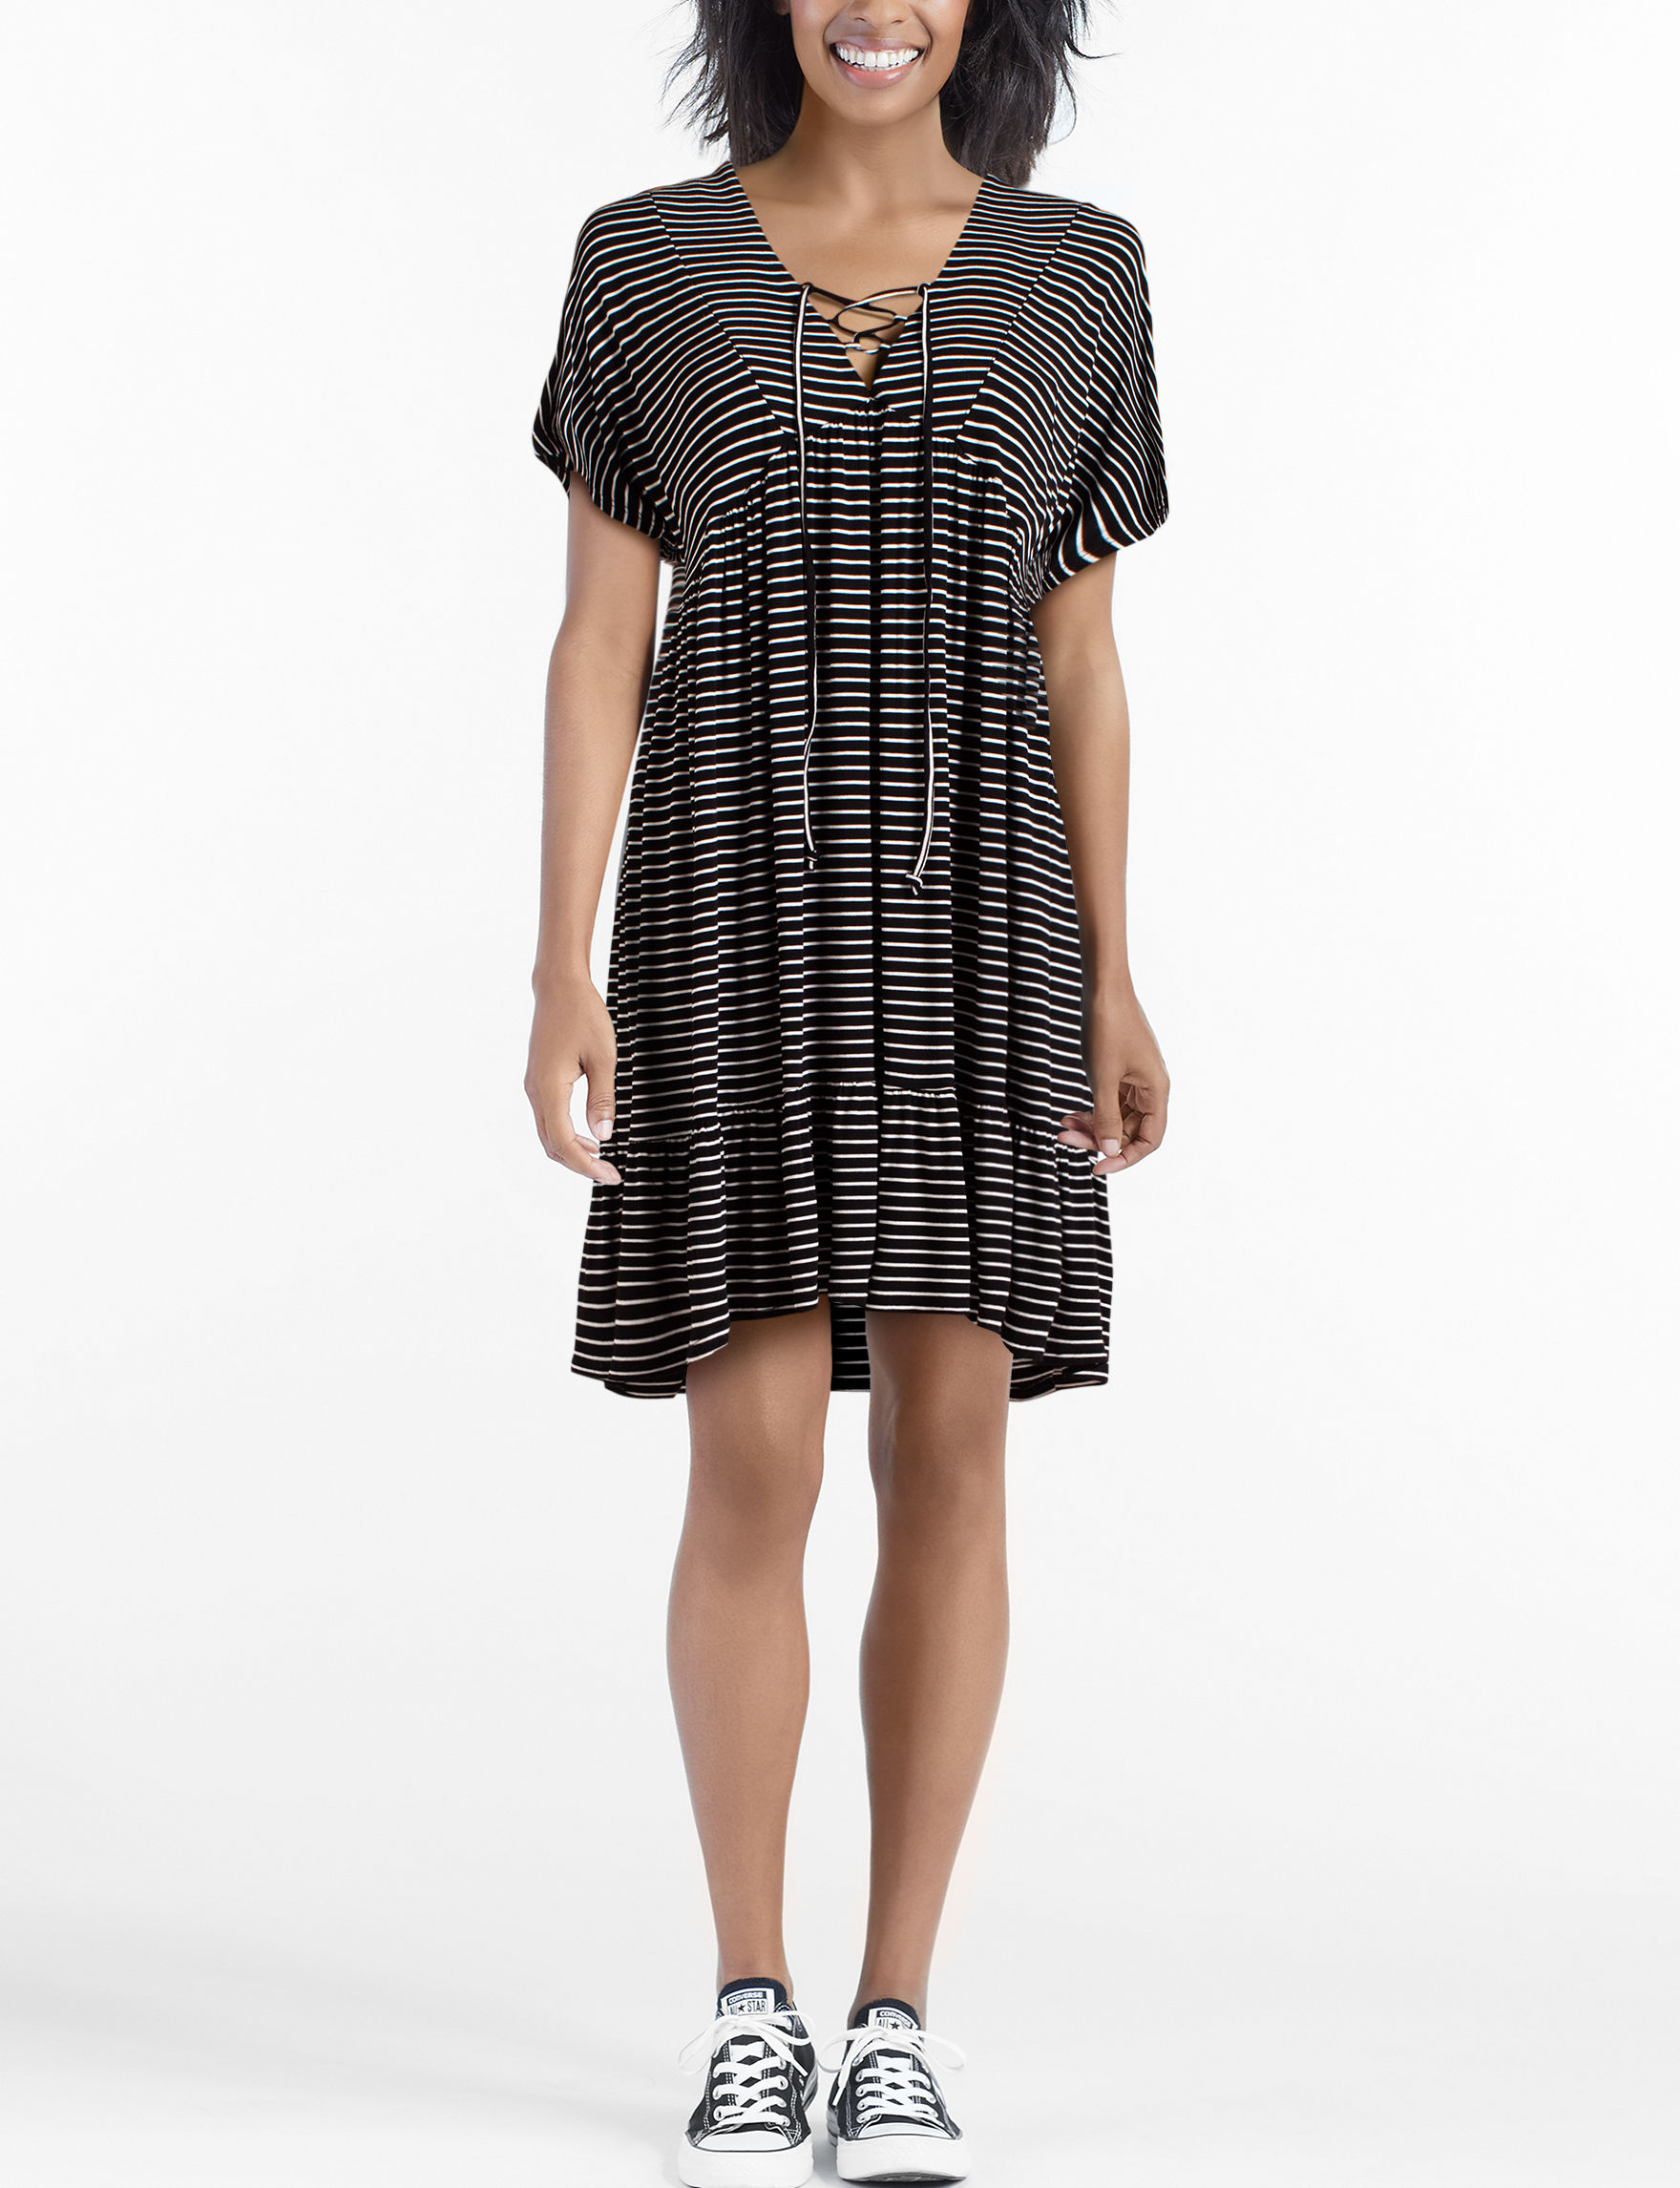 Heart Soul Black White Everyday & Casual Shift Dresses